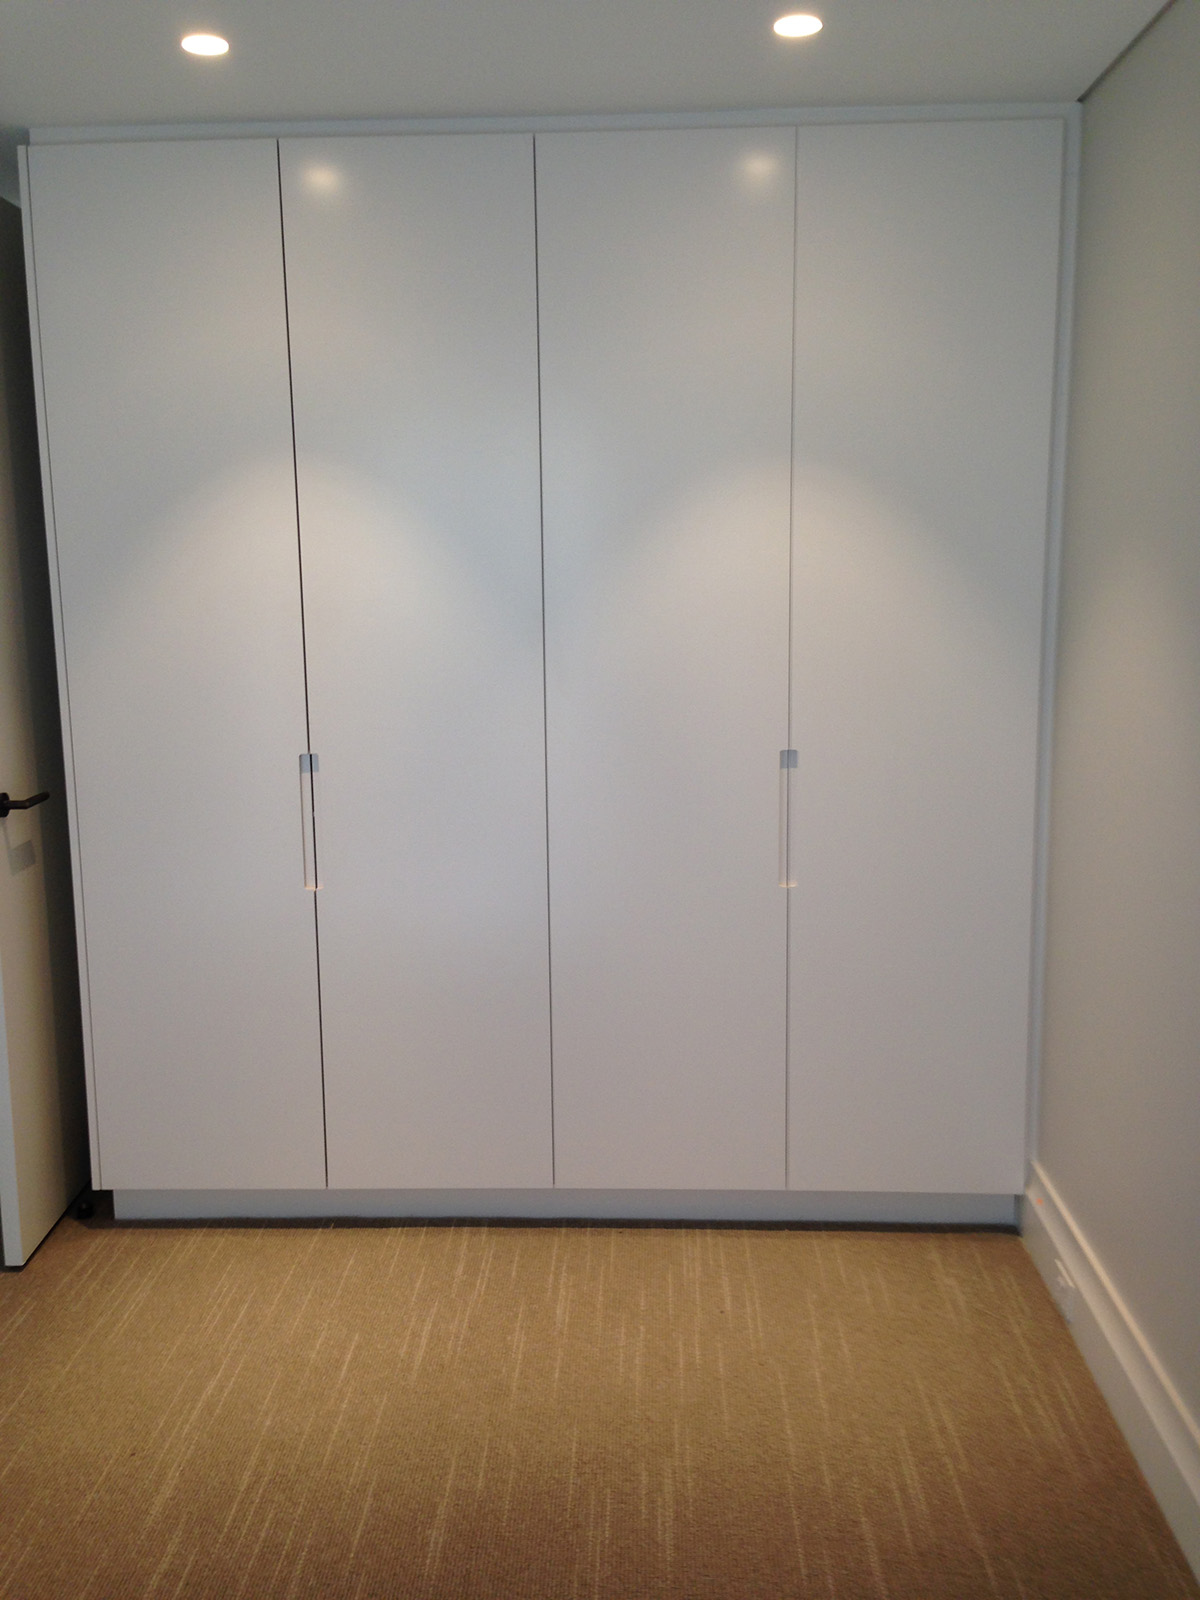 Plain Hinged Doors with Recessed Grip